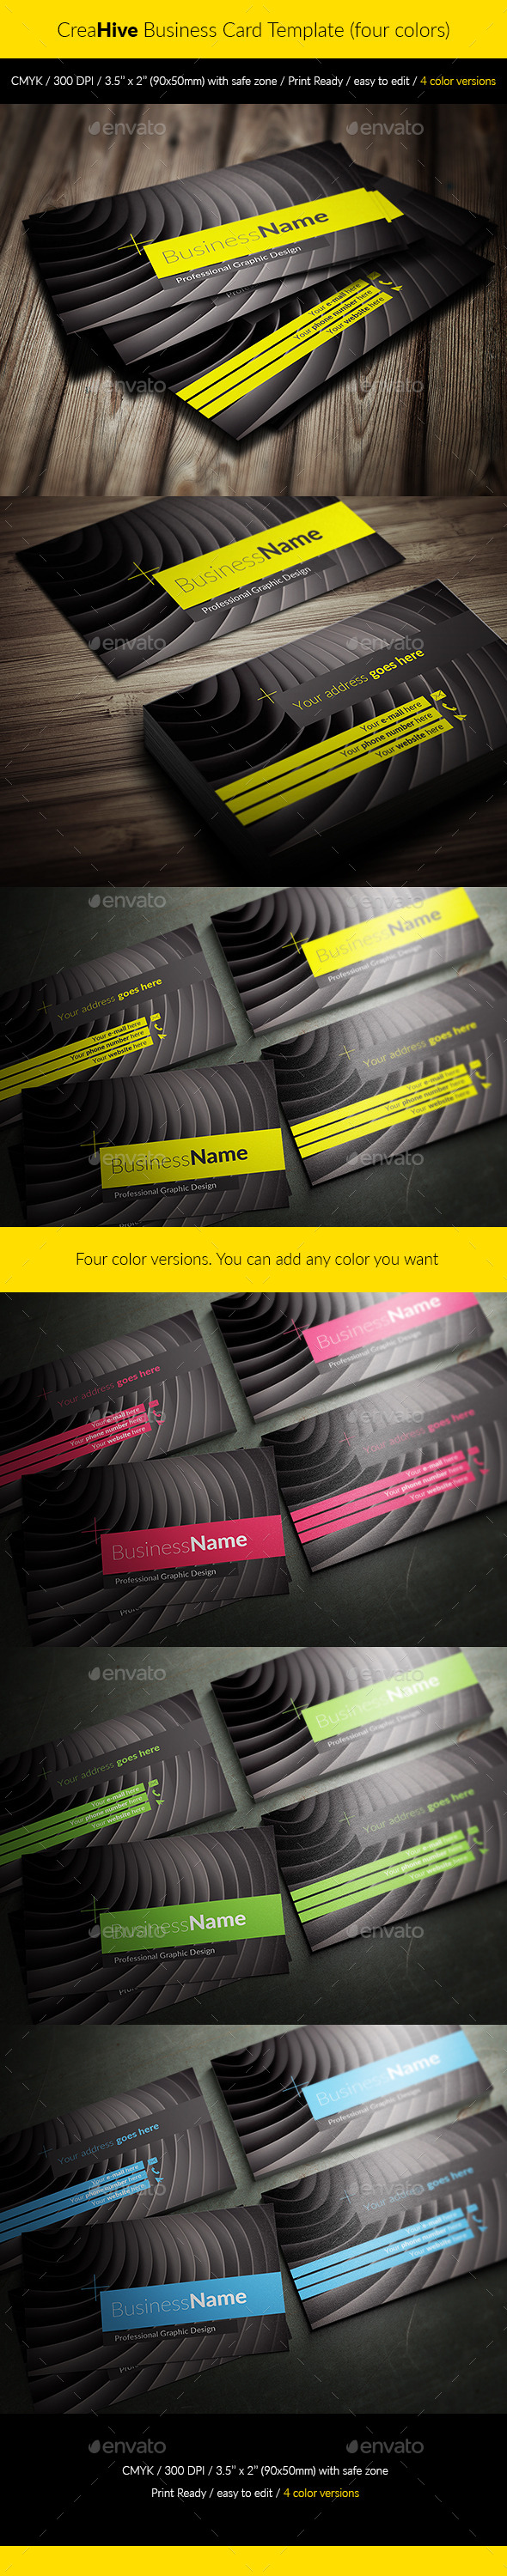 GraphicRiver CreaHive Business Card four colors 11847175